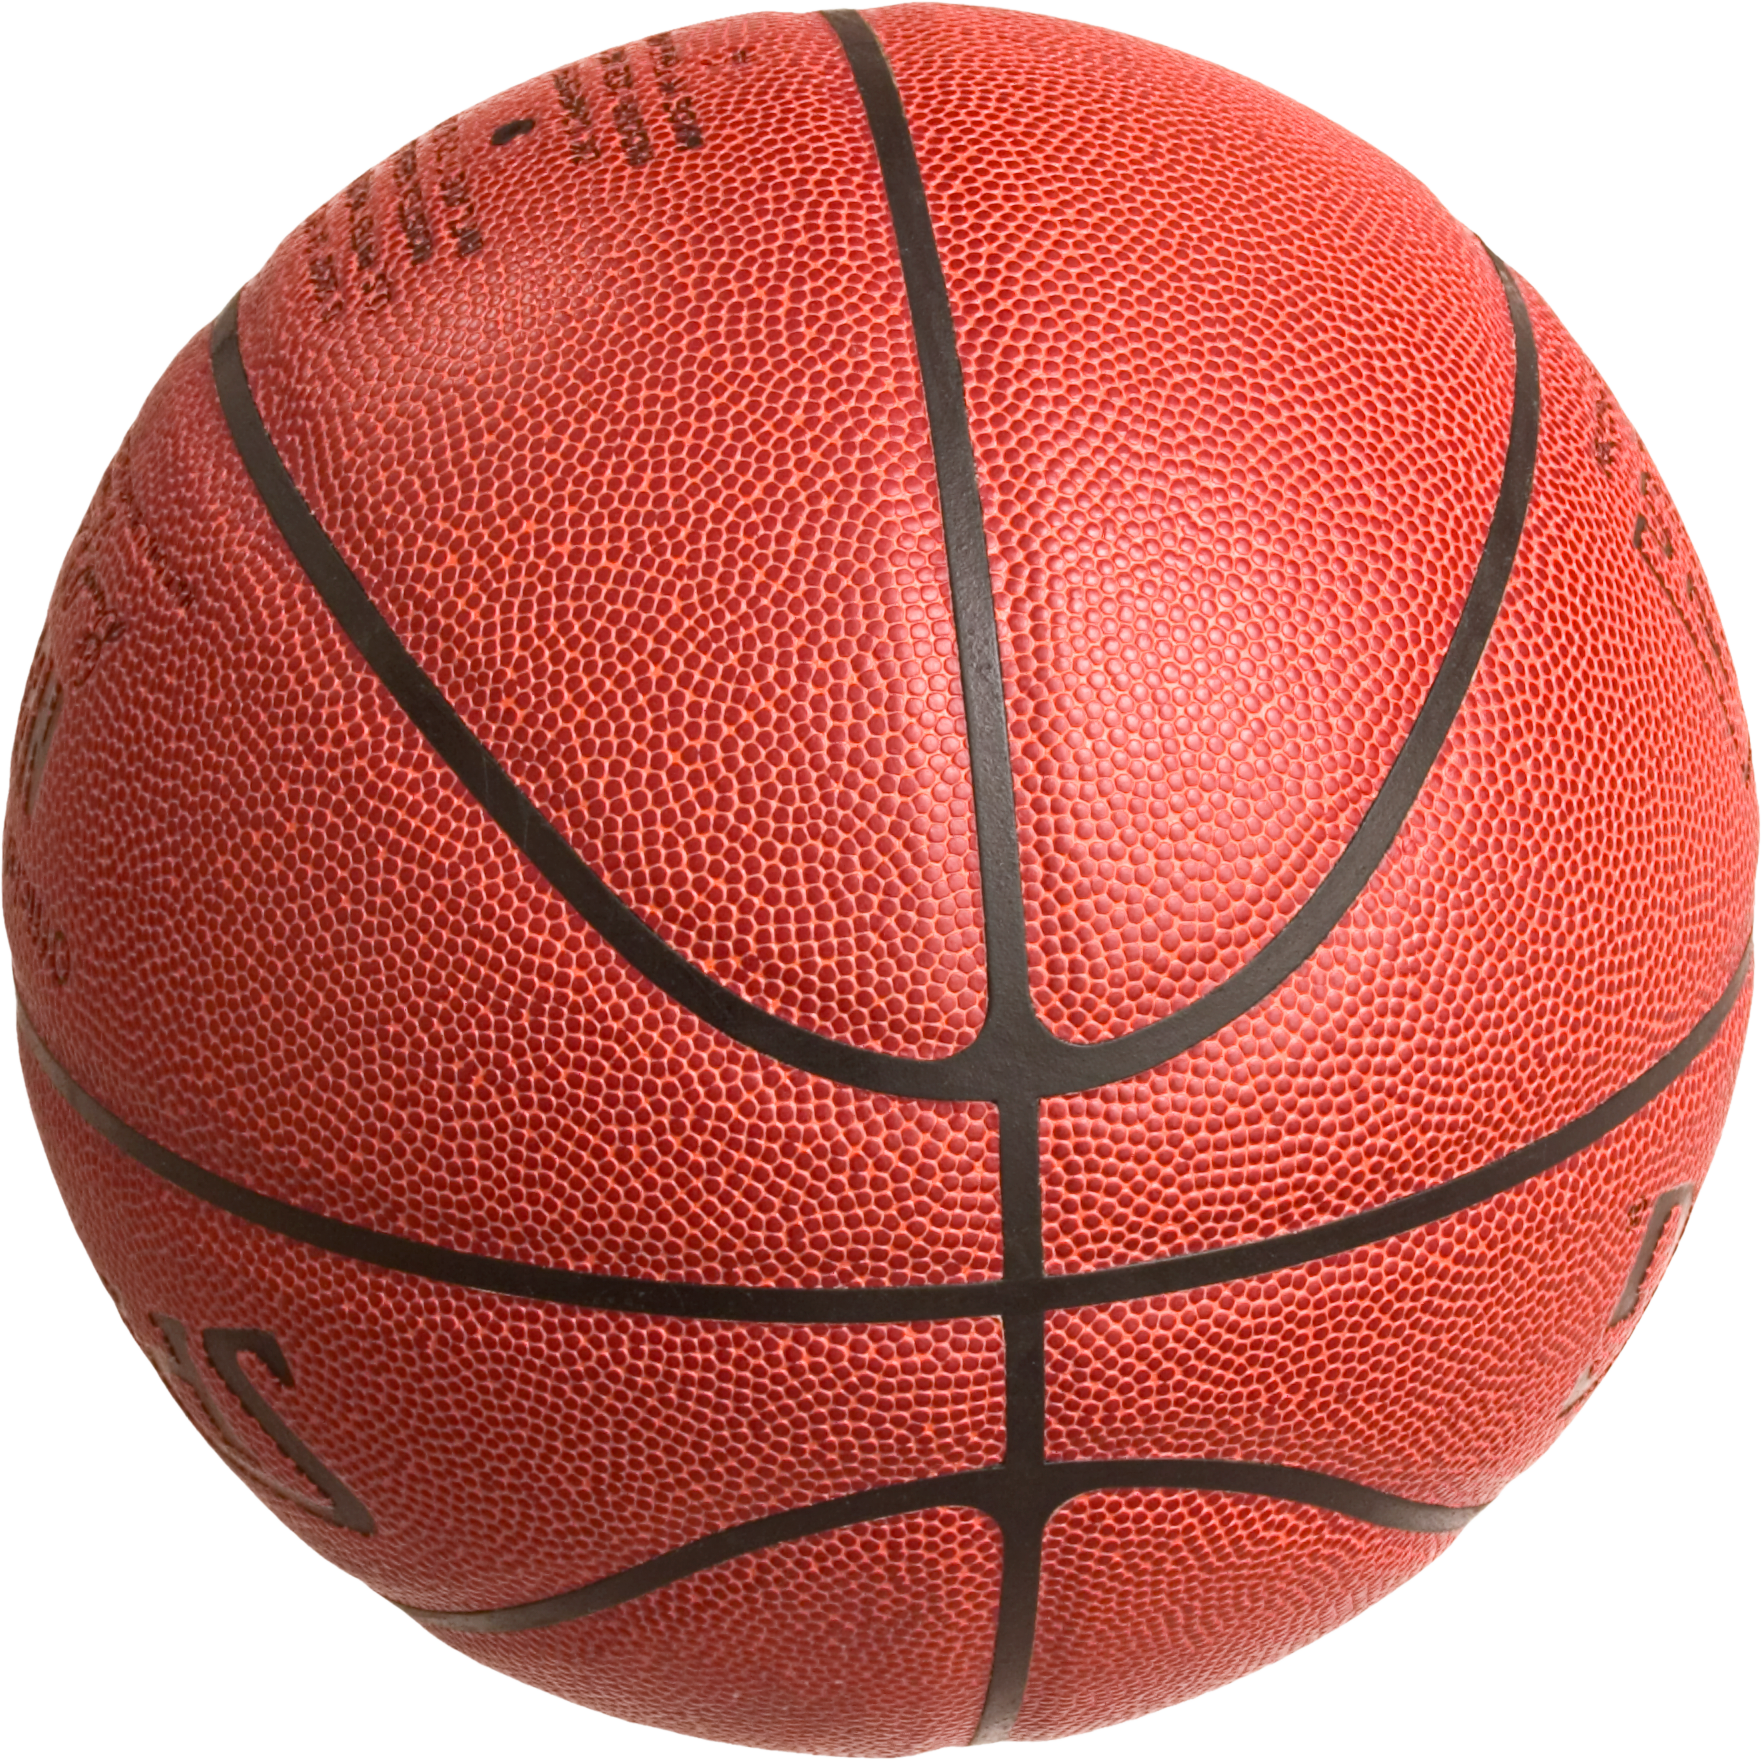 Clipart basketball black and white picture royalty free Basketball Transparent PNG Pictures - Free Icons and PNG Backgrounds picture royalty free